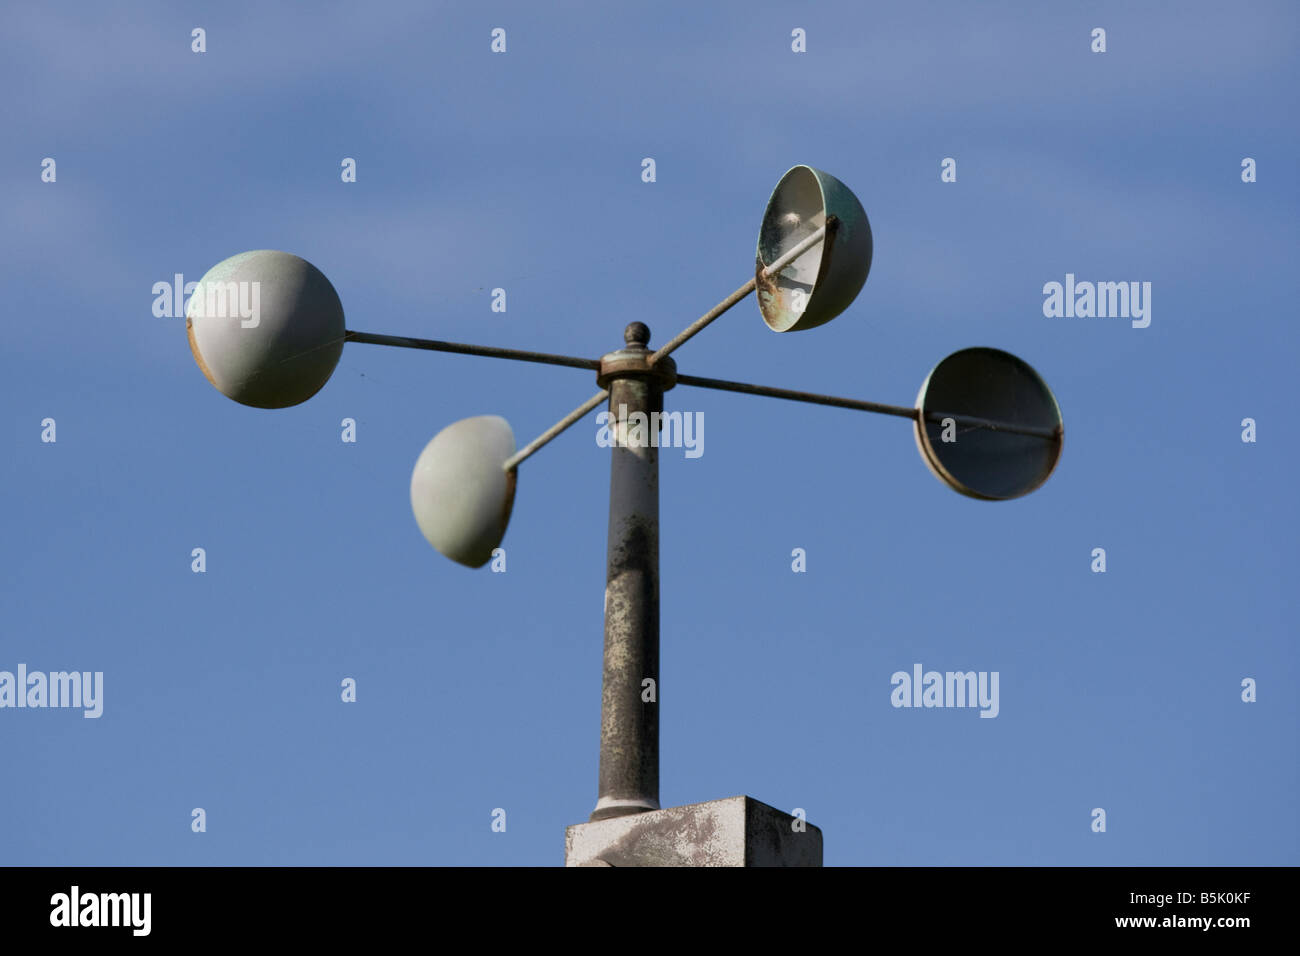 Images of Anemometer - #SpaceHero